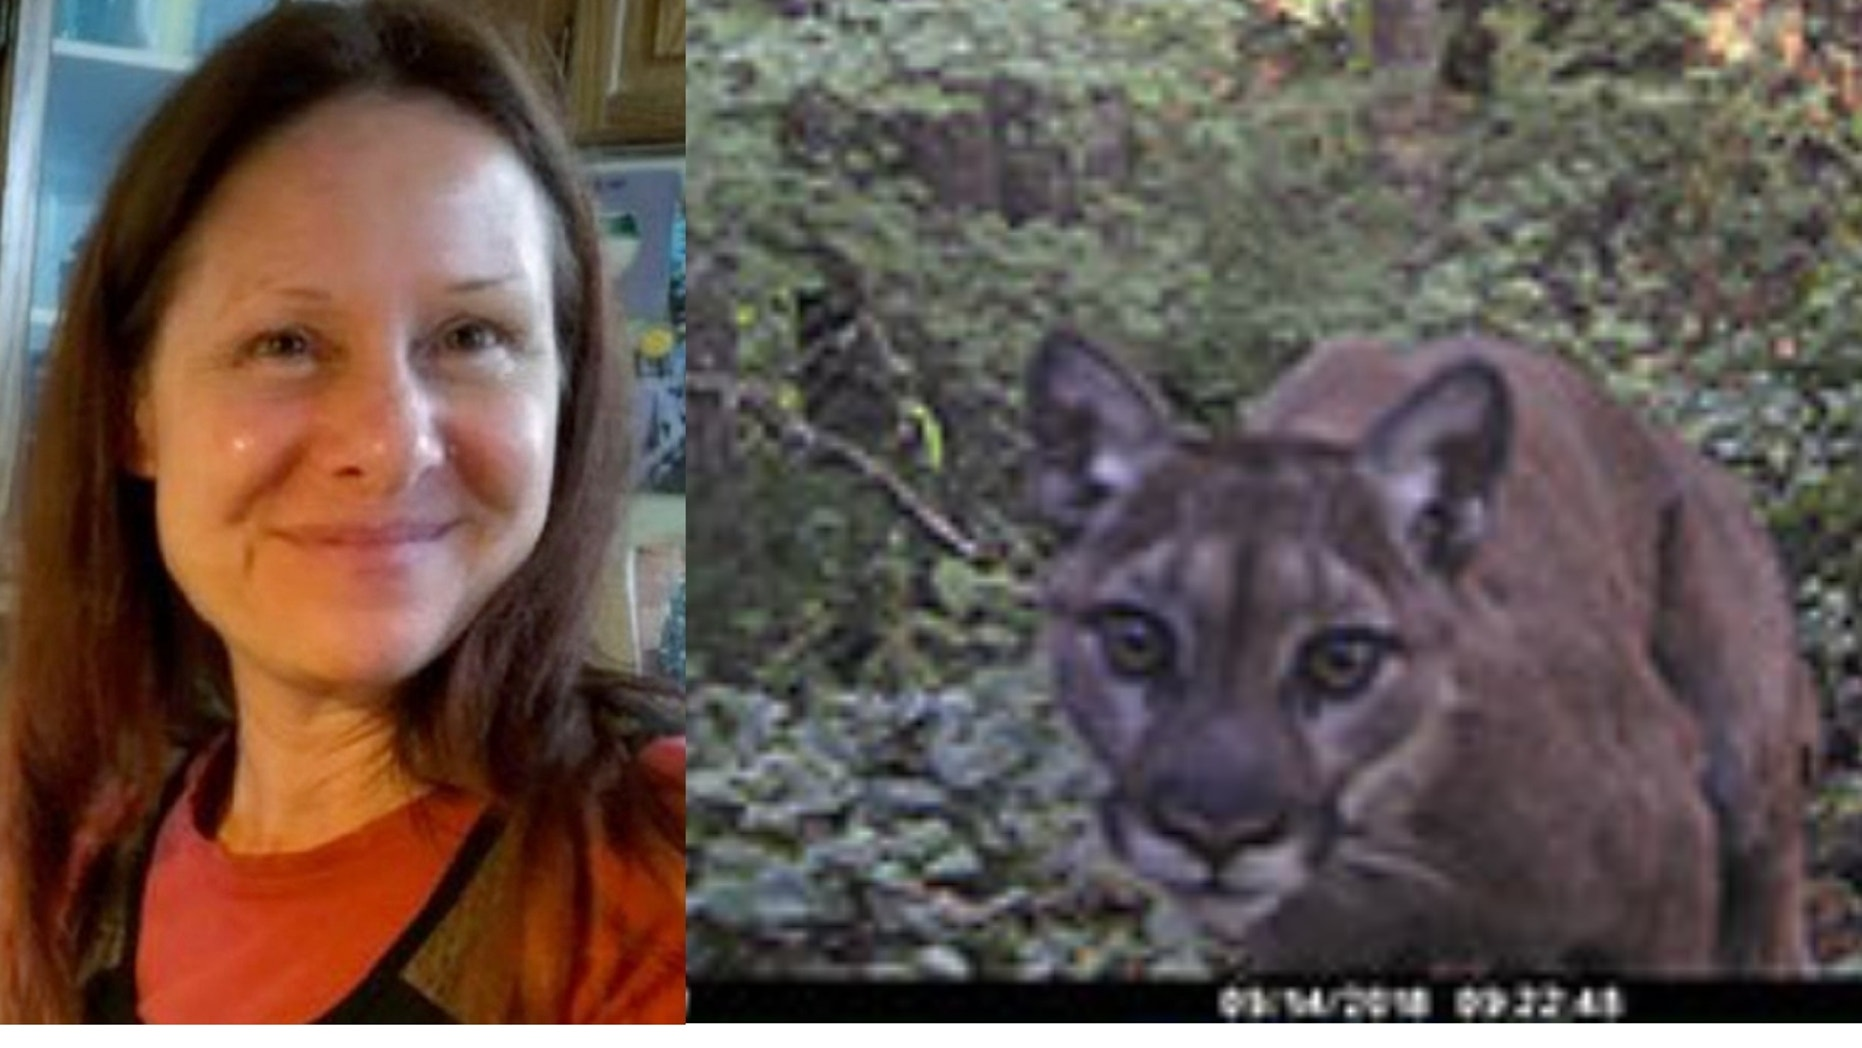 Diana Bober, 55, was killed in a suspected cougar attack in September.